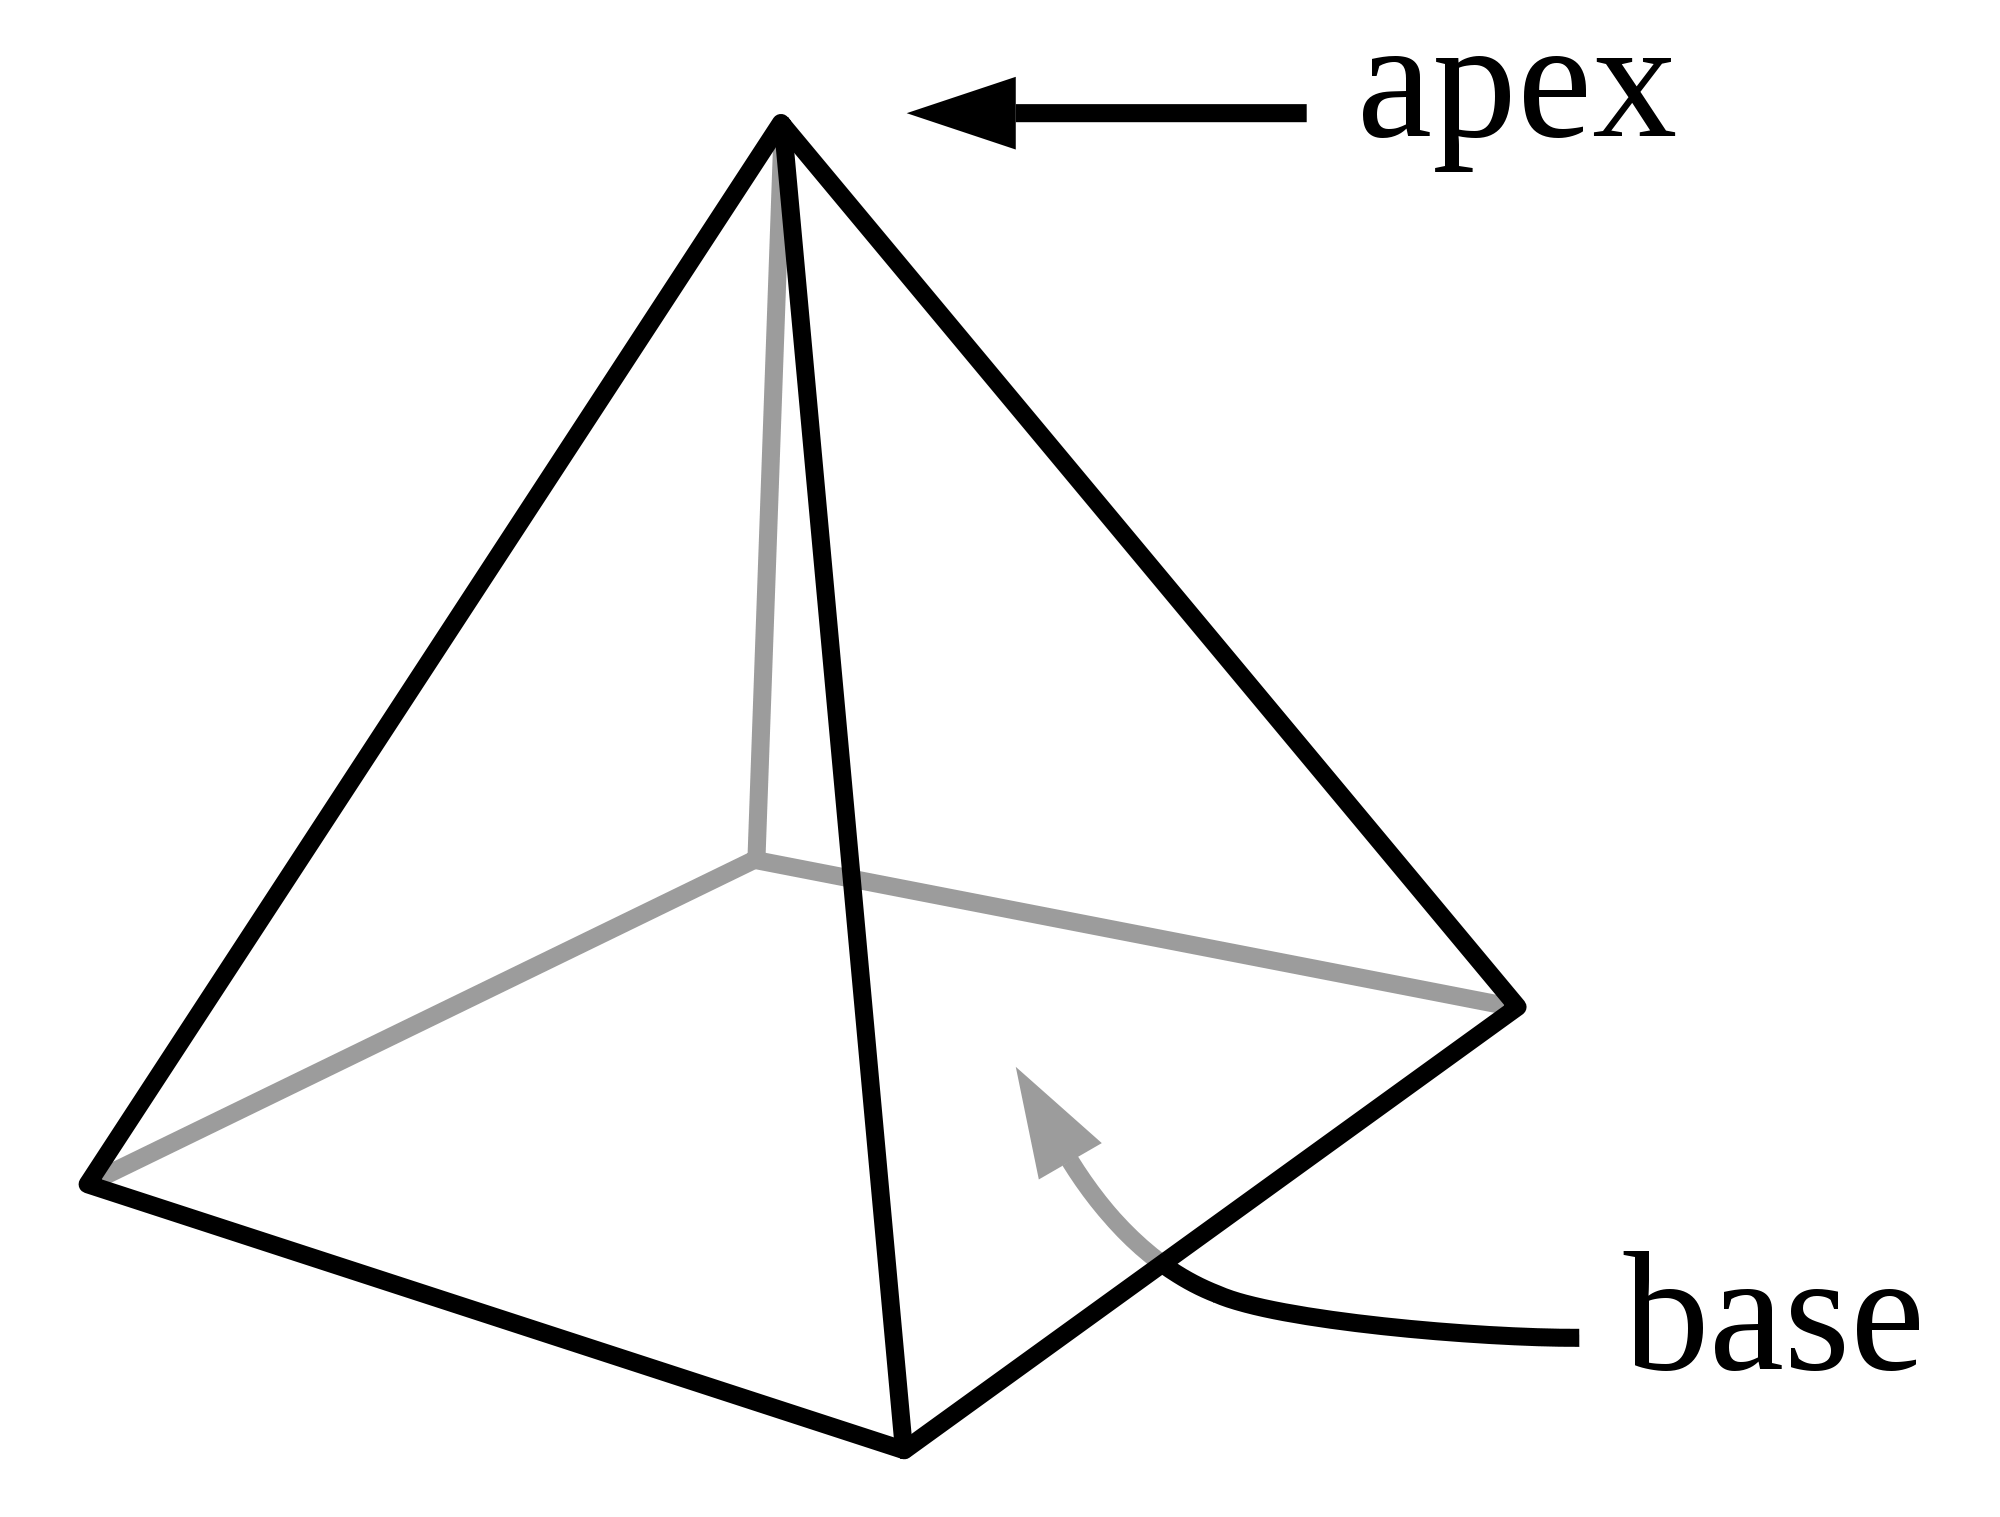 Drawn pyramid mathematical File:Pyramid Wikimedia svg Commons Open